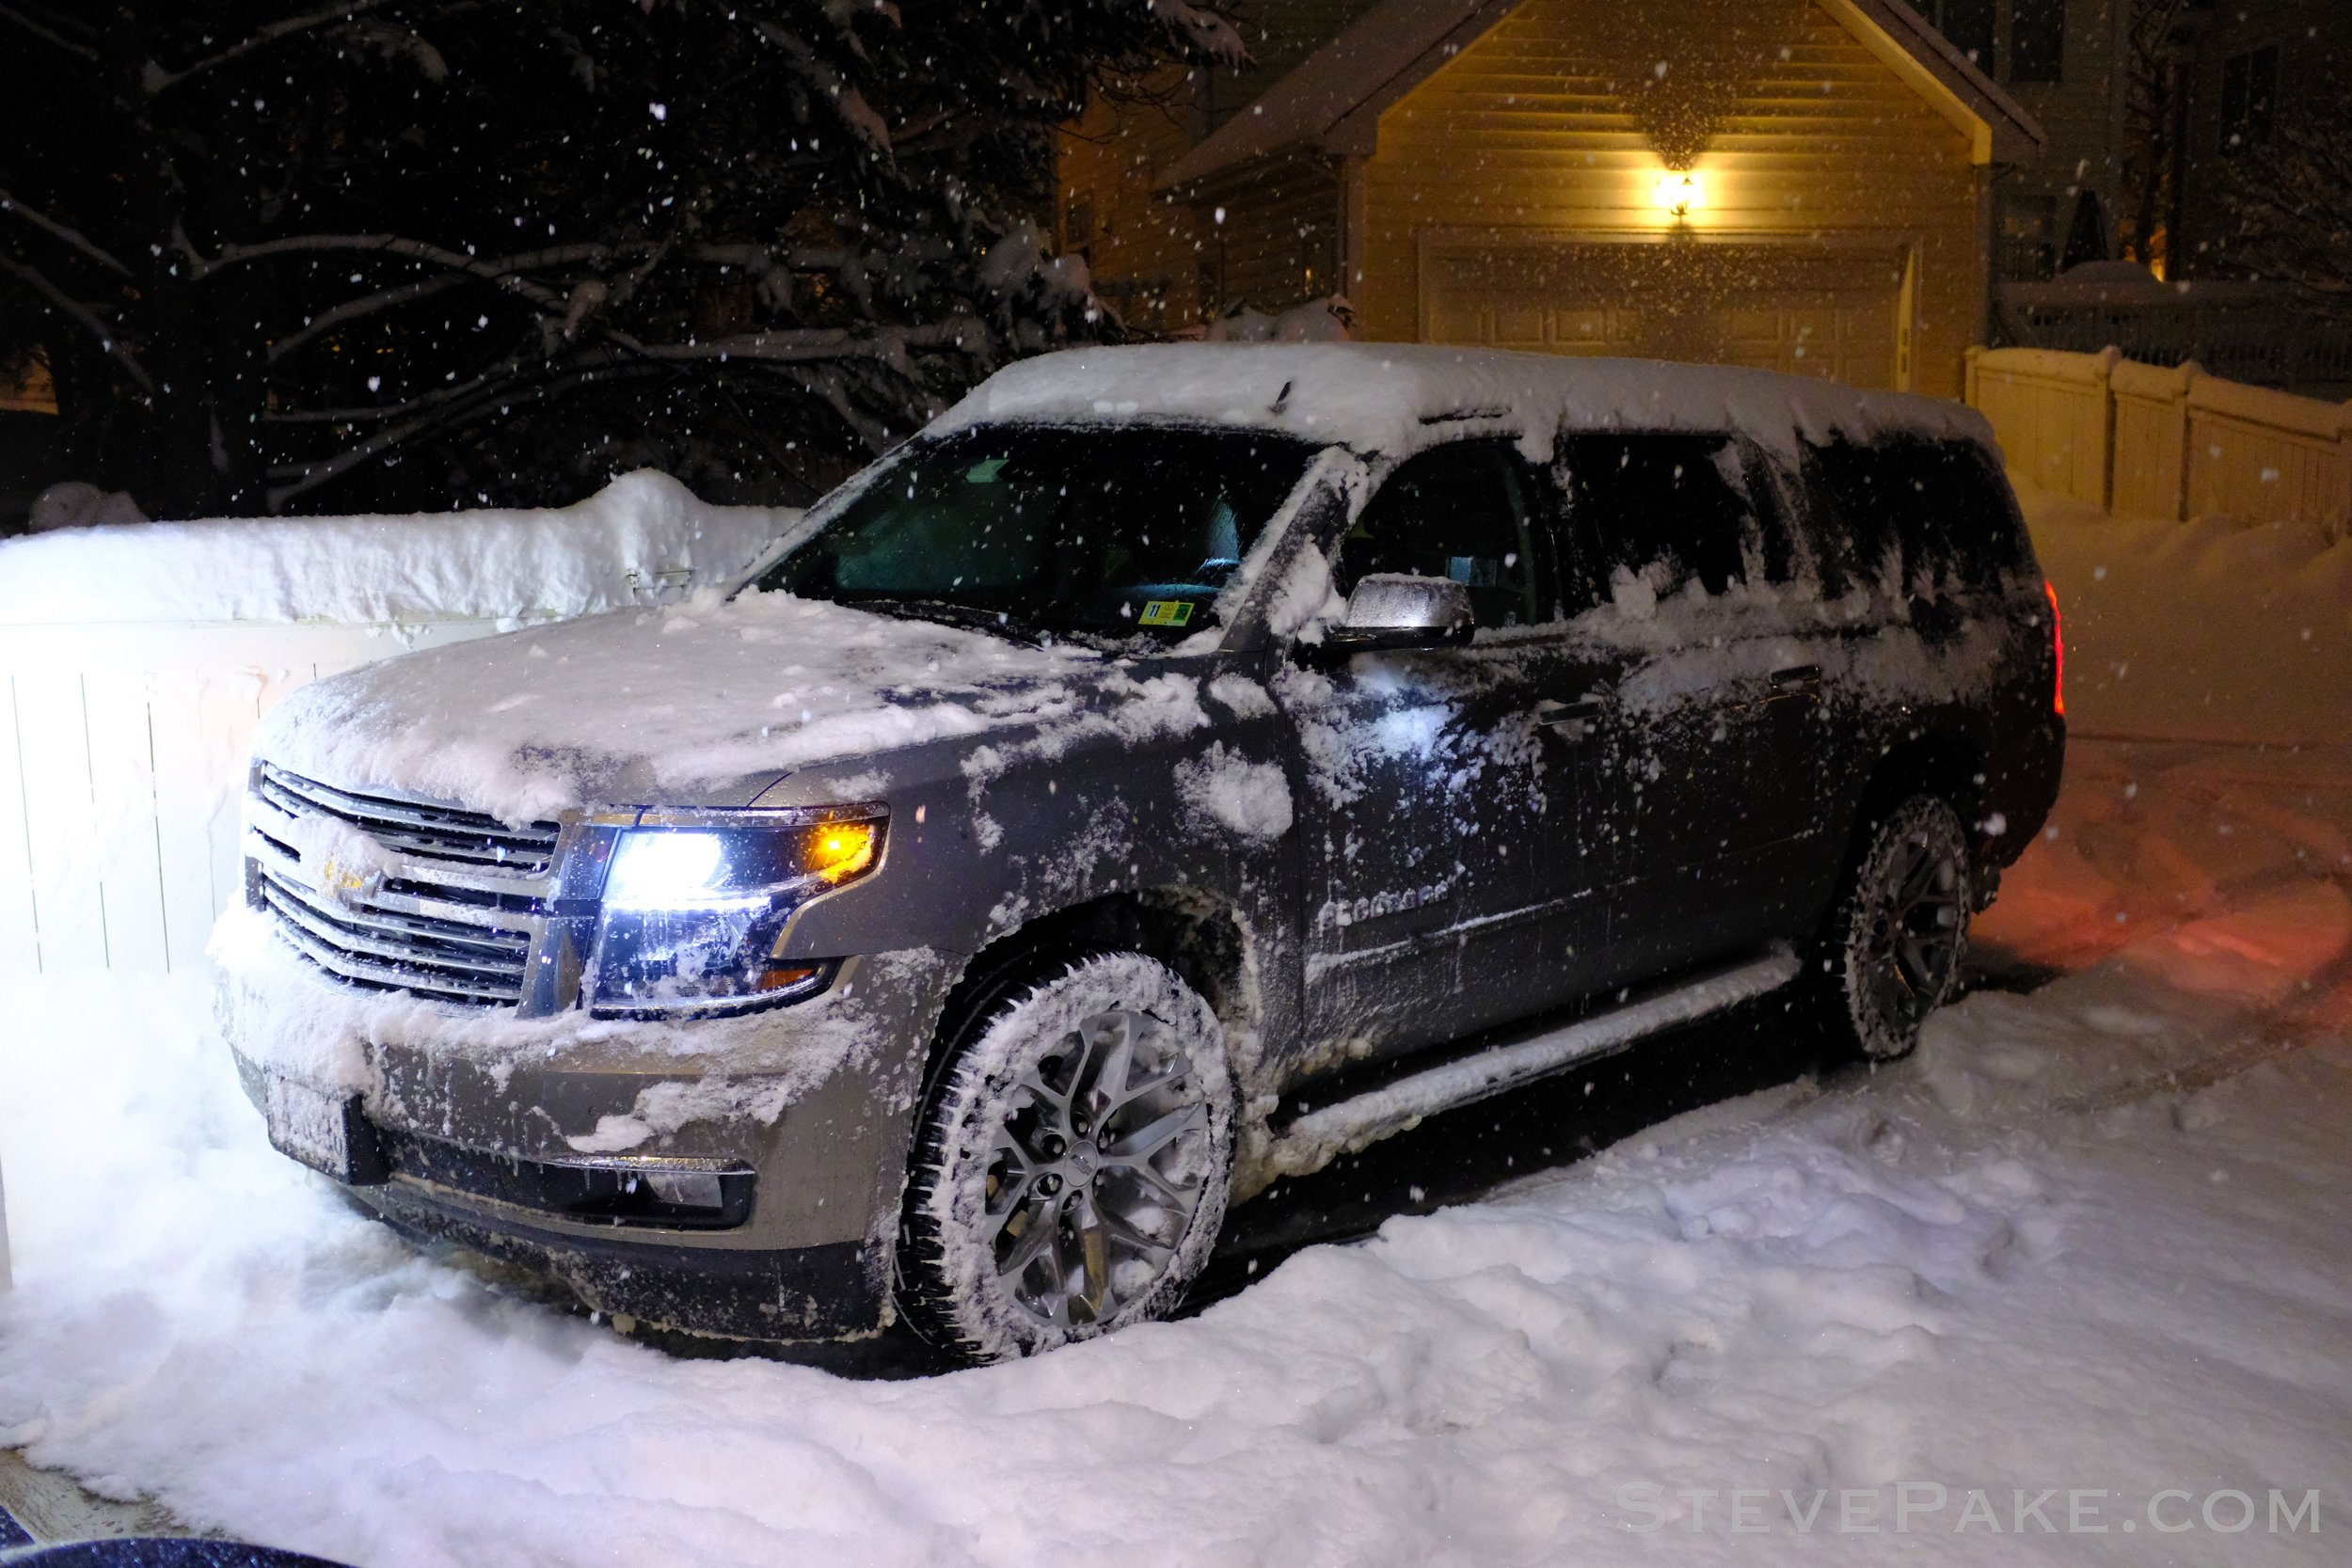 The Suburban is, of course, a beast in the snow even with all-season tires. The truck-based no nonsense 4WD system has locking differentials and just goes. With winter tires and a leveling kit and/or pulling off the front lip spoiler, it would basically be unstoppable in the snow, but we don't have winter weather severe or long enough to warrant that here in the D.C. area.